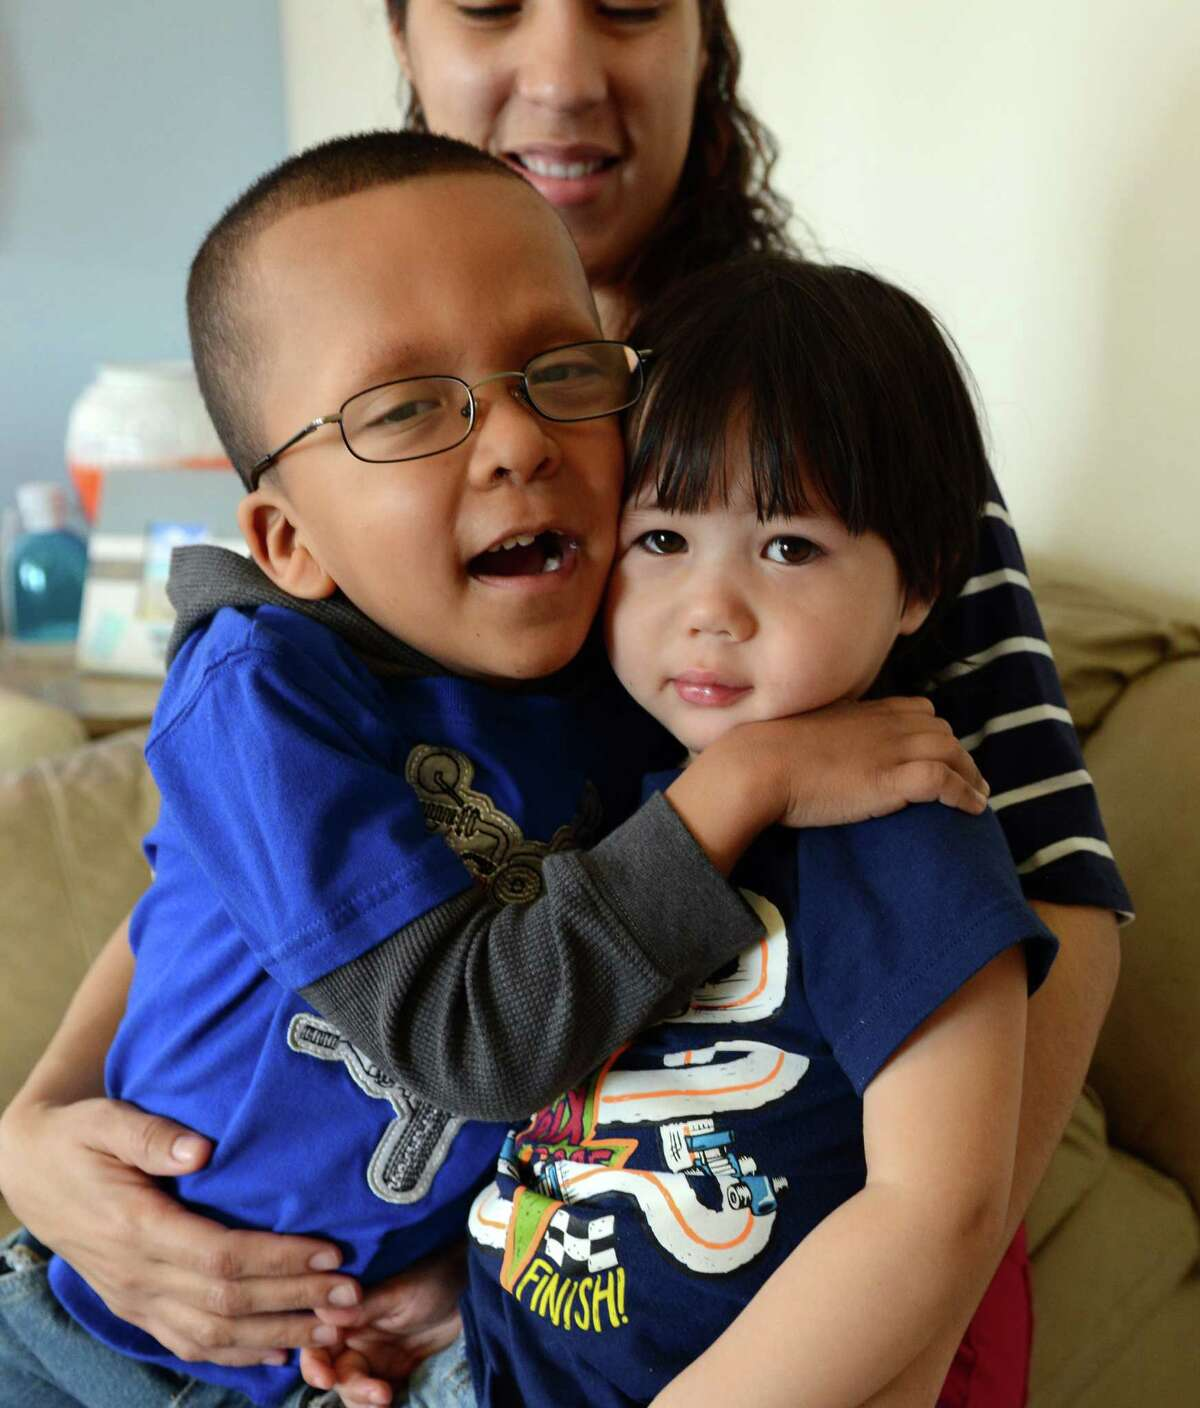 Six-year-old Michael Rodriguez gives his younger brother Alexis, 2, a hug, Thursday, April 3, 2014, at their home in Bridgeport, Conn. Michael has a rare condition called Cardio-Facio-Cutaneous (CFC) syndrome, marked by congenital heart defects, scoliosis, eye problems, learning disabilities and other problems. The family is trying to raise money to attend a conference in Florida this summer where they can spend time with other children with Michael's condition and meet the doctor who discovered CFC sydrome.